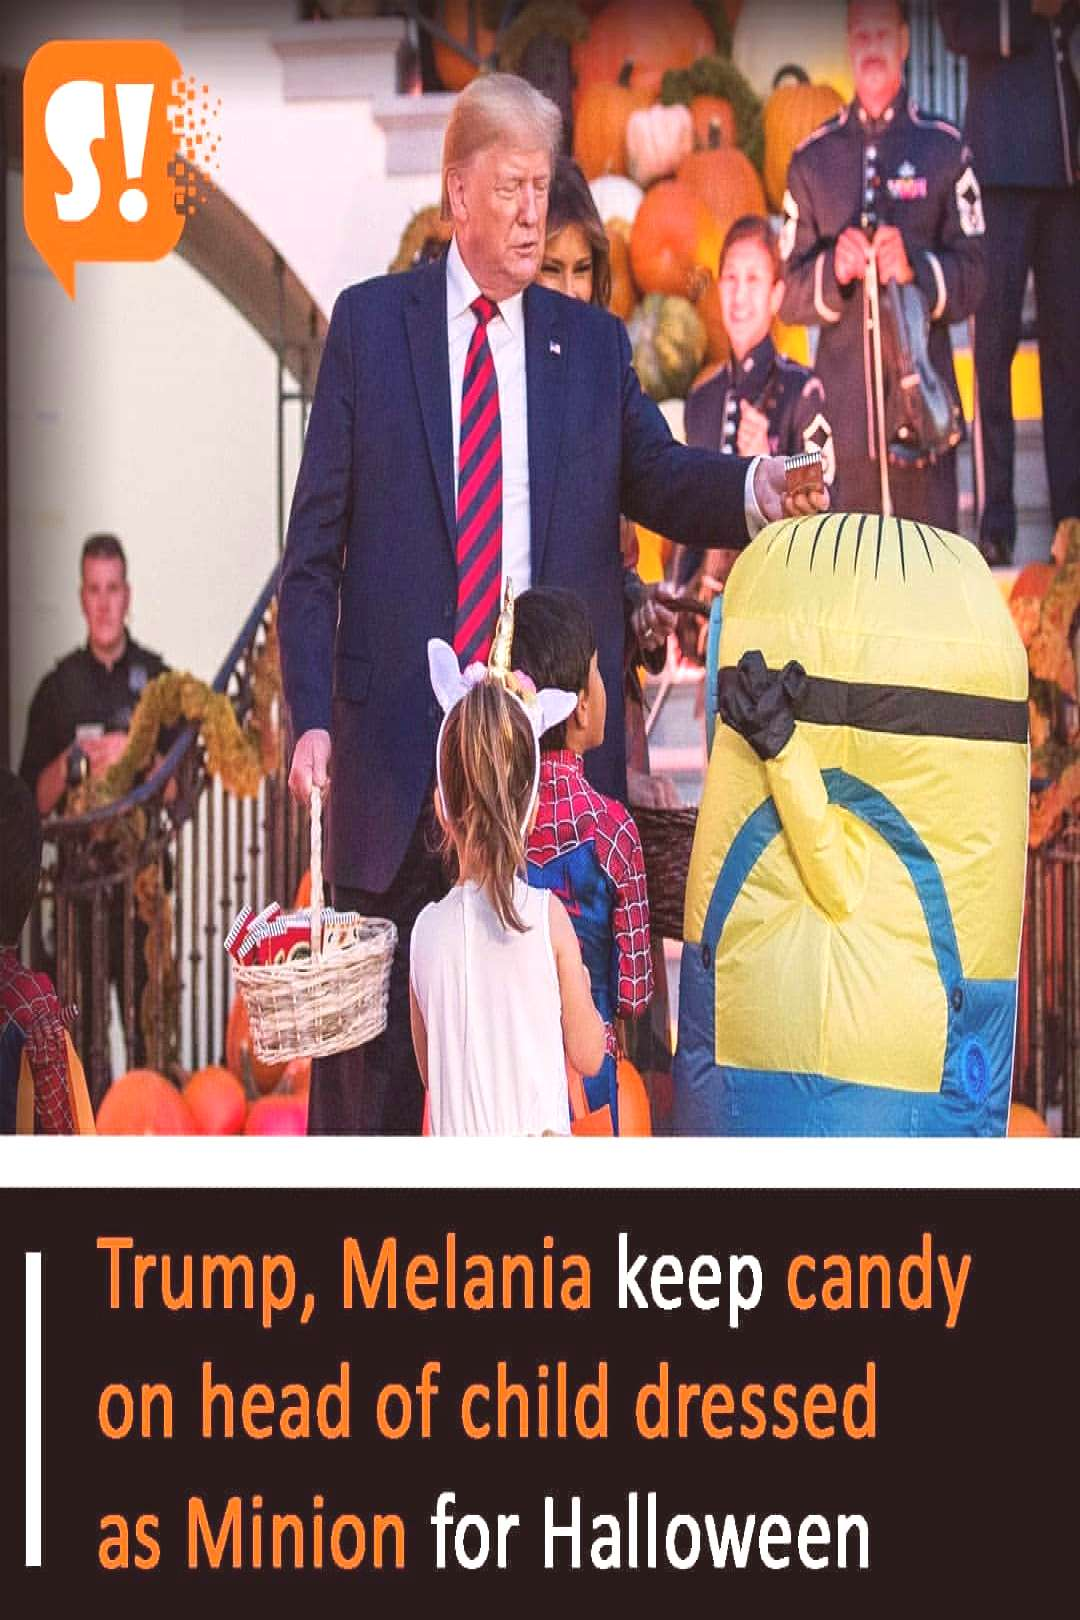 Trump, Melania keep candy on head of child dressed as Minion for